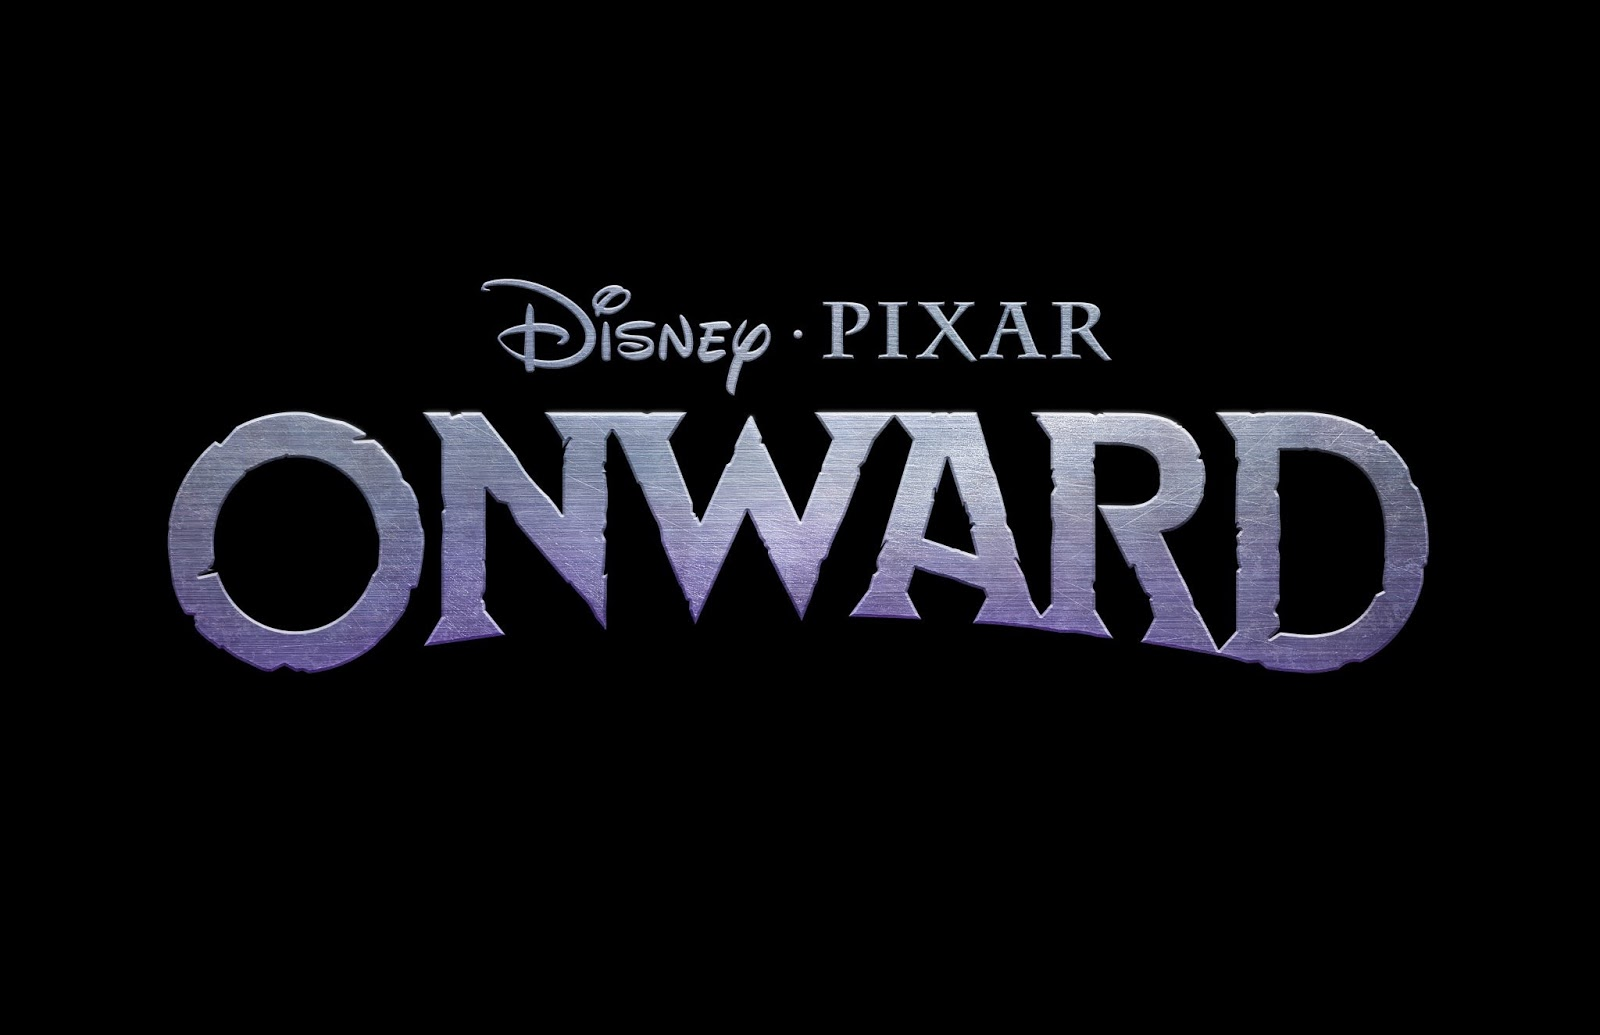 Pixar-Onward-Logo.jpeg